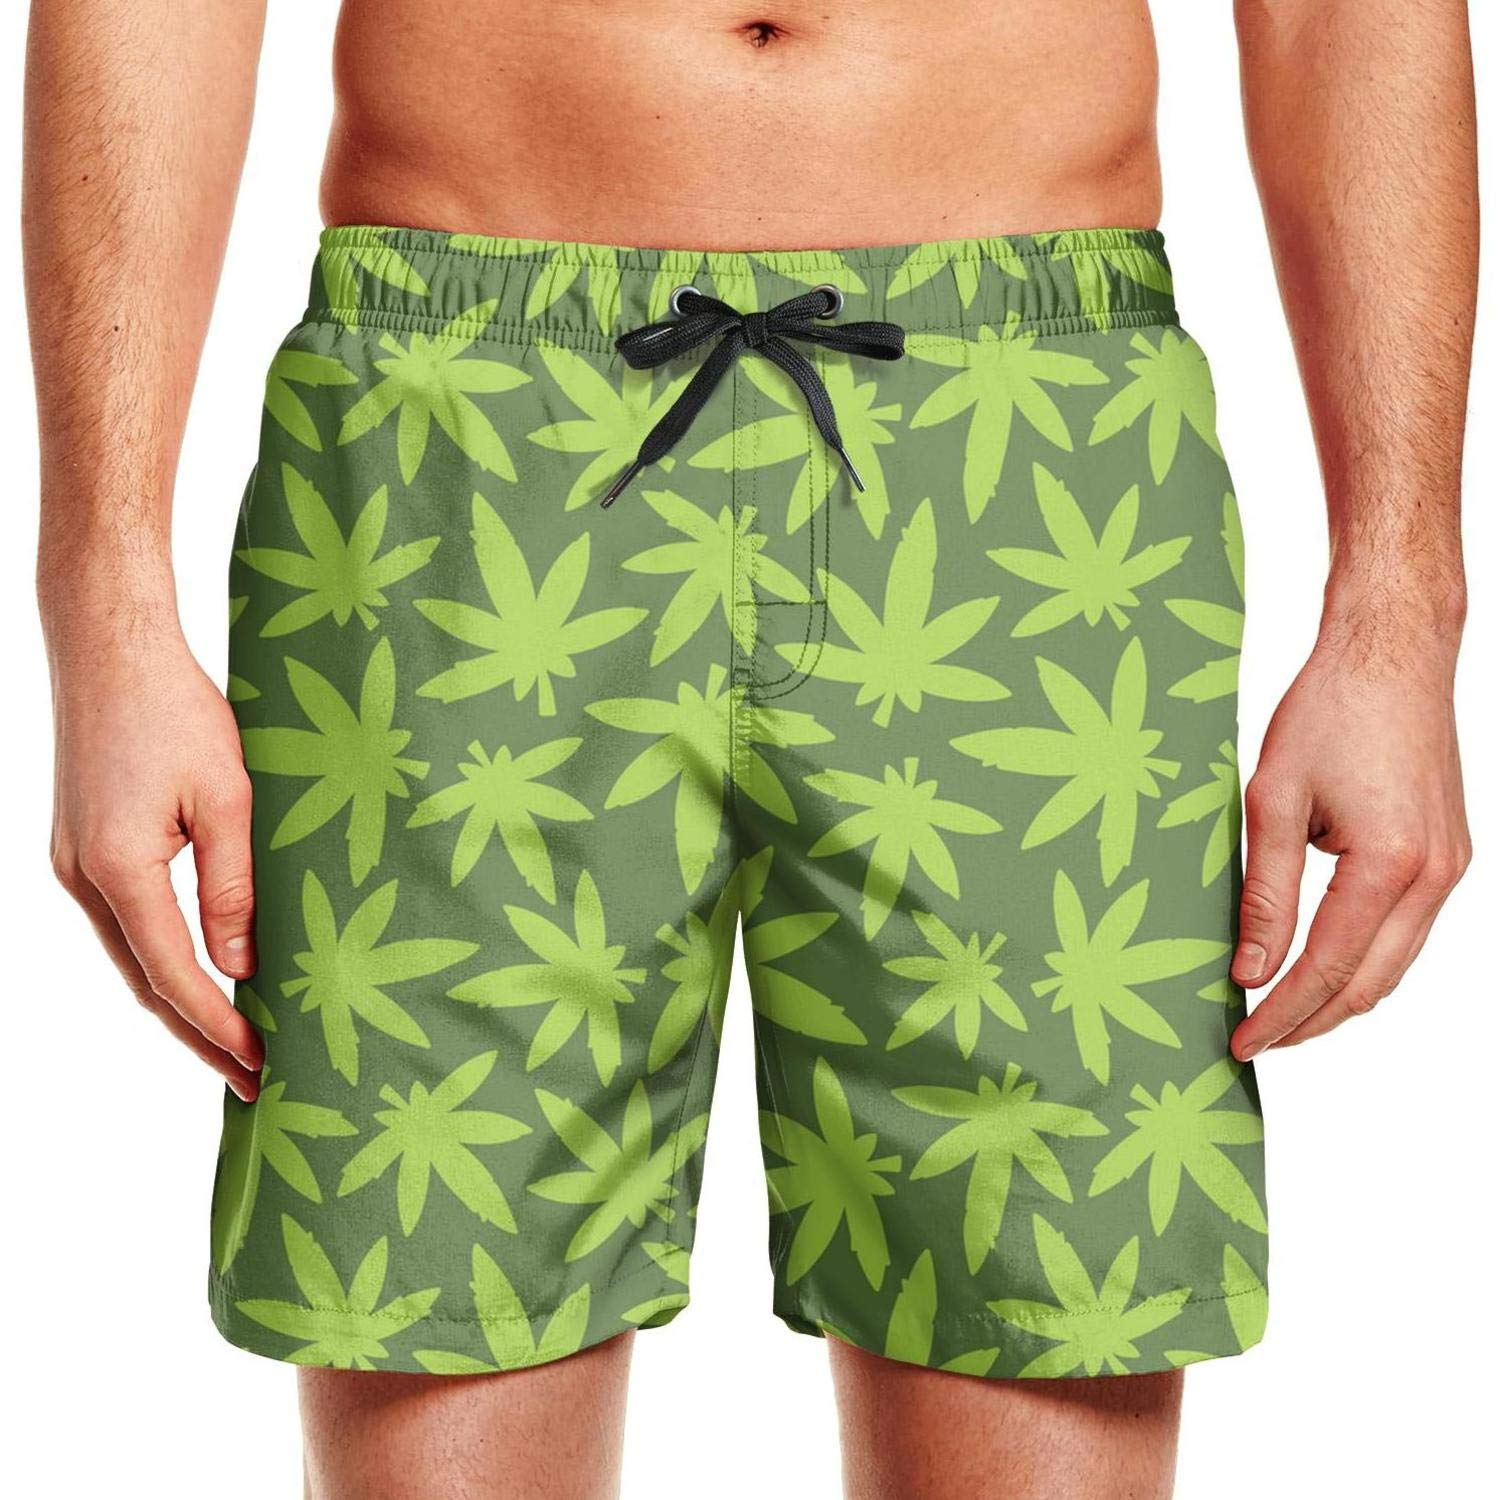 chchht Mens Beach Shorts Marihuana Cannabis Ganja Weed Solid Board Swim Trunks Side Pockets Board Shorts